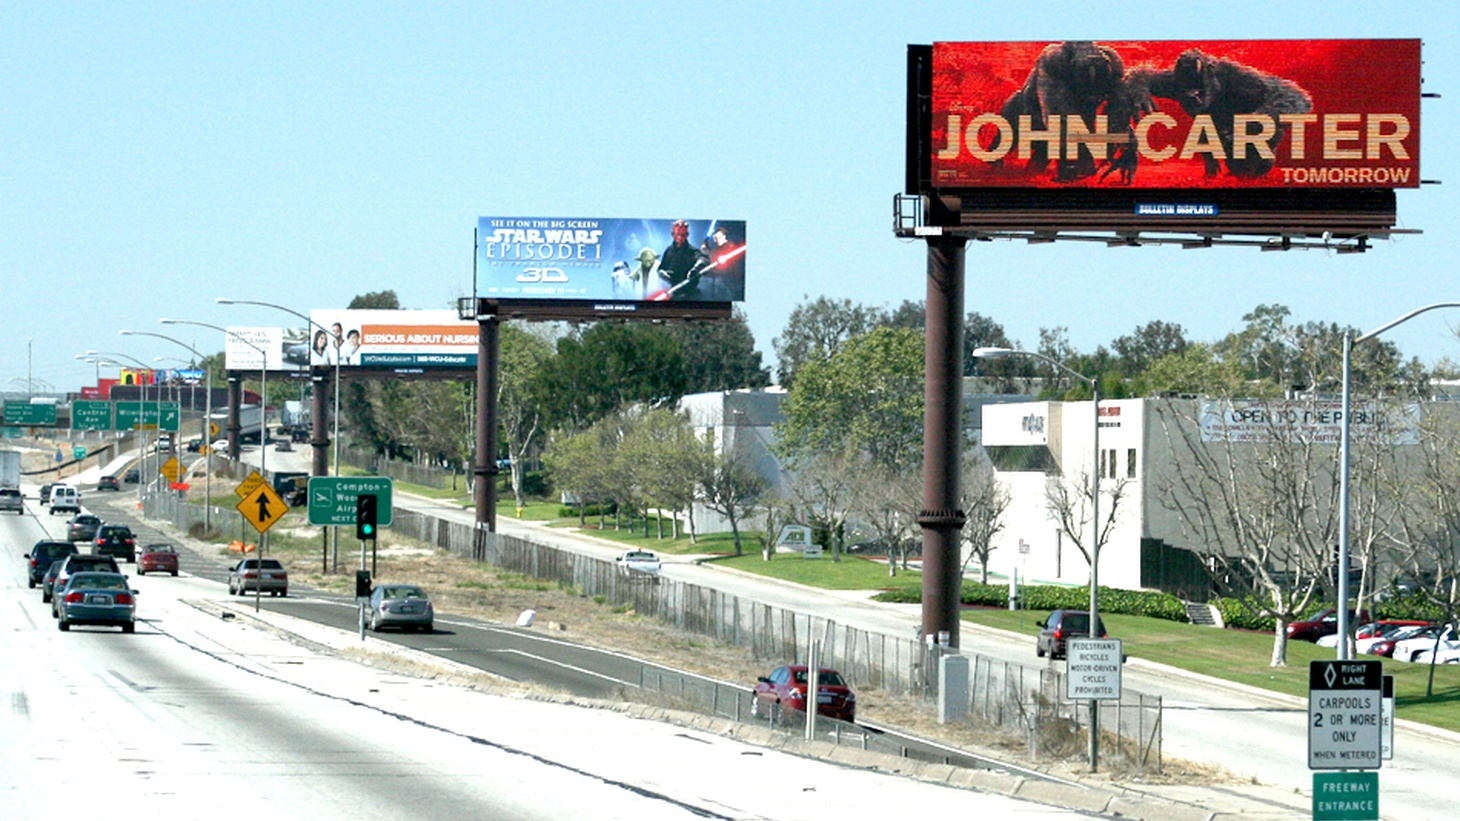 Digital billboards along the freeway.